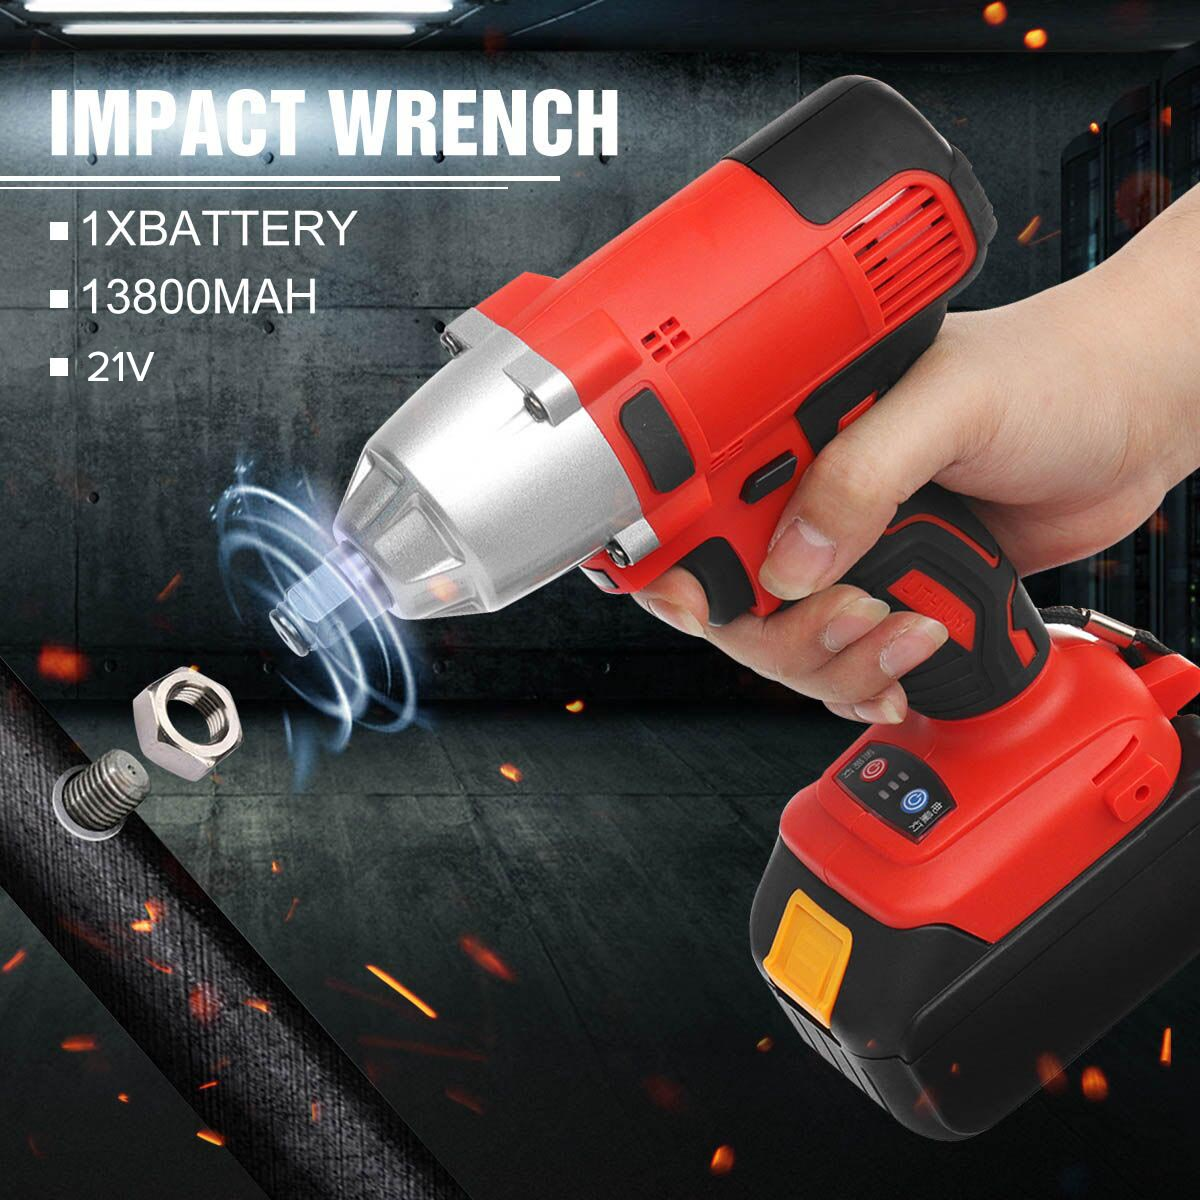 21V 13800mAh Rechargeable Lithium Battery 310Nm 128TV Cordless Drill Electric Drill Wrench Powerful Driver Household Car Tools21V 13800mAh Rechargeable Lithium Battery 310Nm 128TV Cordless Drill Electric Drill Wrench Powerful Driver Household Car Tools